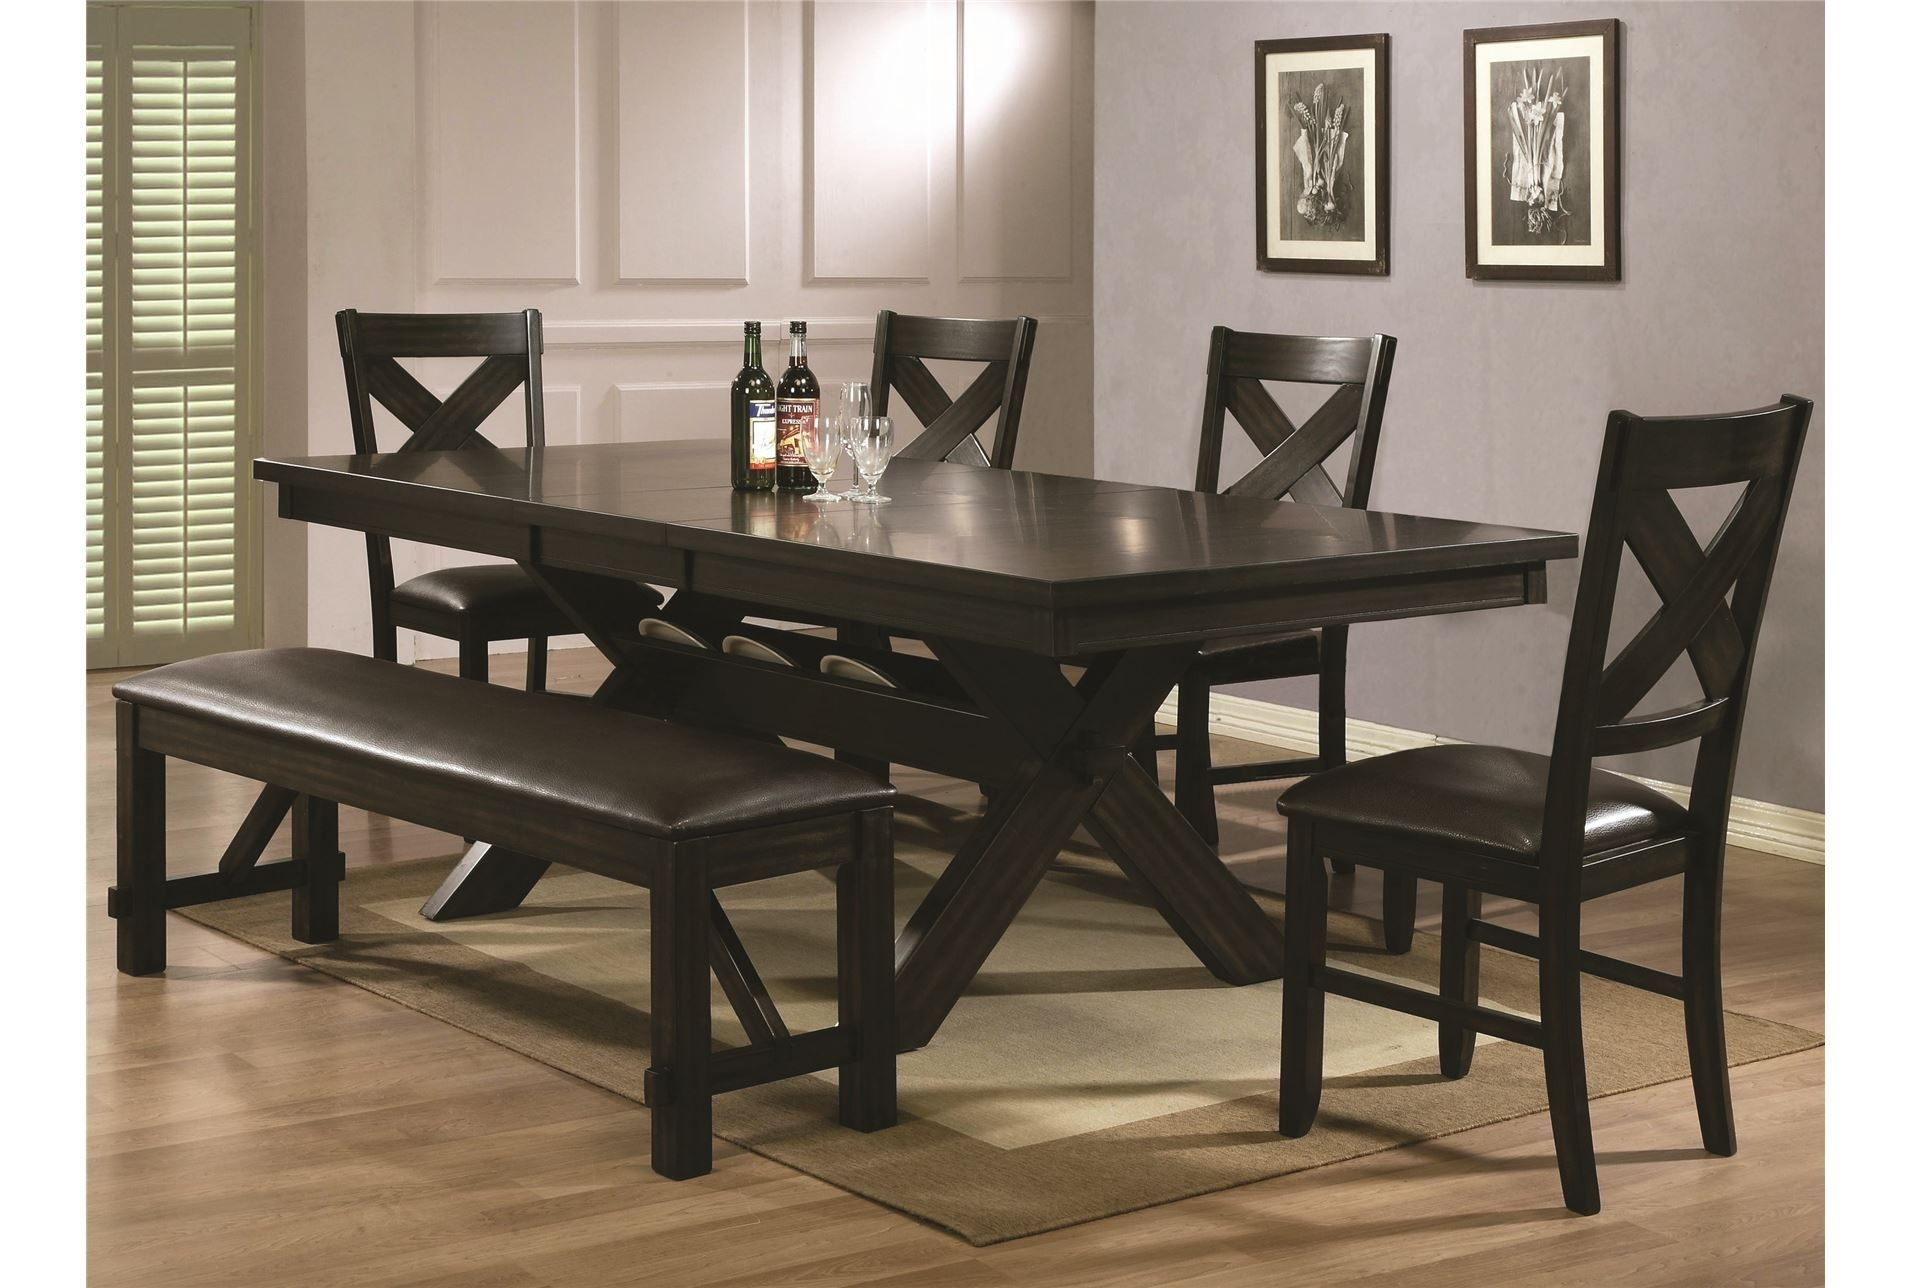 Pelennor 6 Piece Extension Dining Set | Dining, Dining Sets And Intended For 2017 Pelennor Extension Dining Tables (Image 11 of 20)